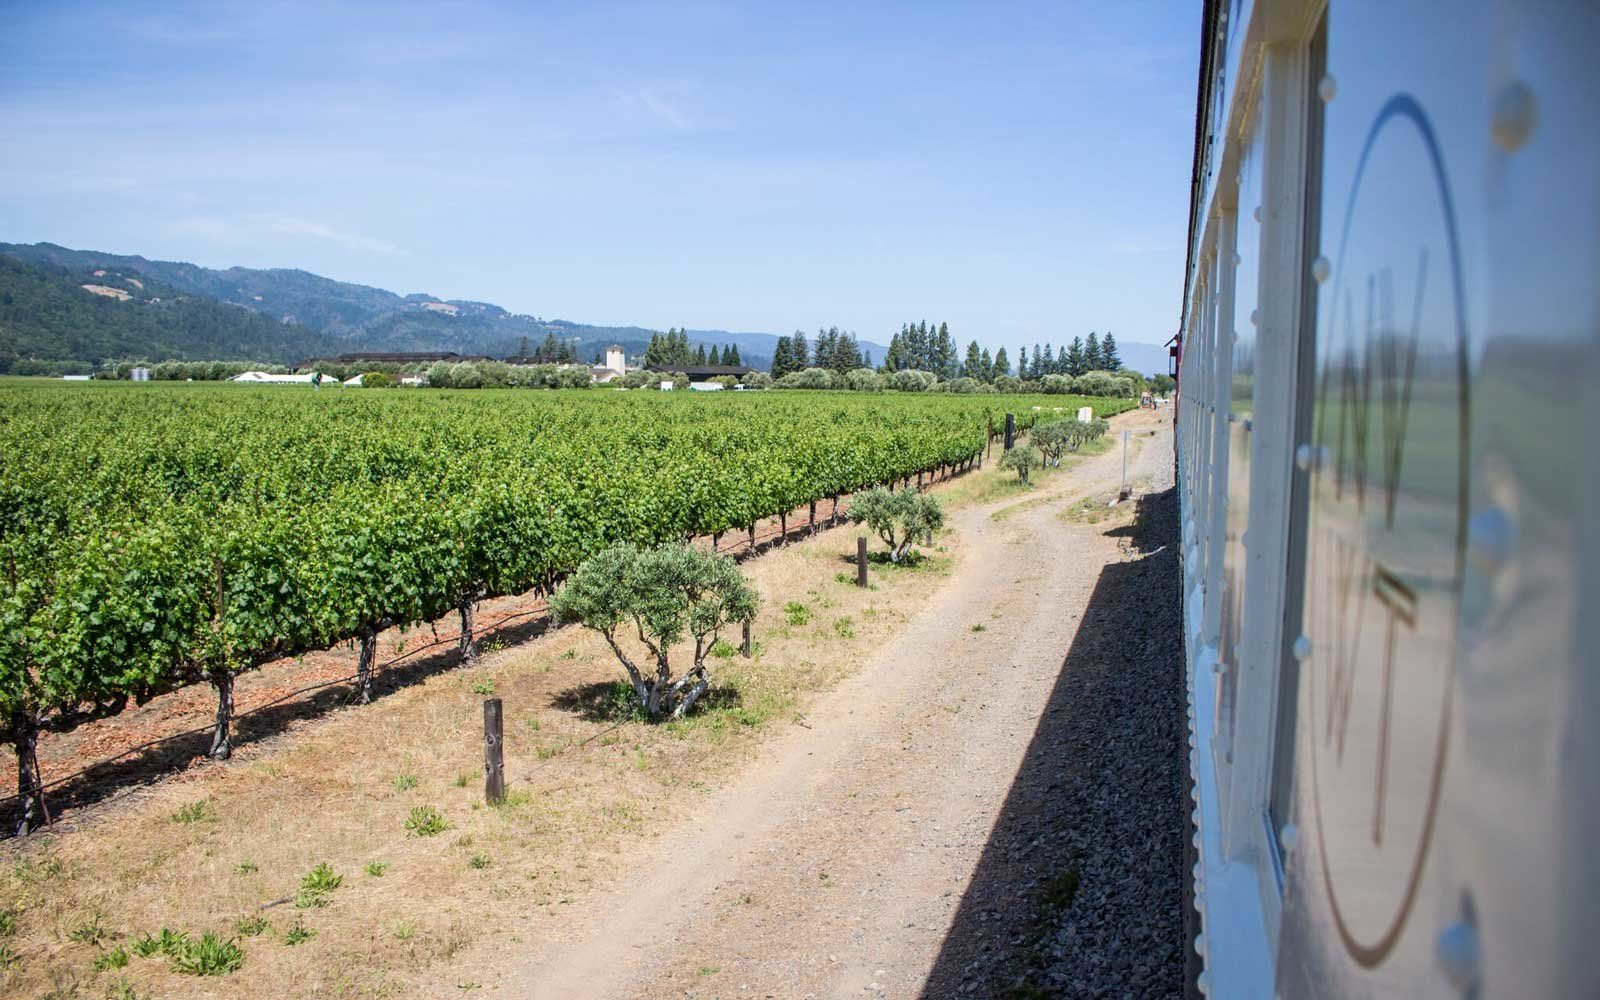 The Napa Valley Wine Train Might Be the Best Day Trip Ever http://www.travelandleisure.com/trip-ideas/bus-train/napa-valley-wine-train